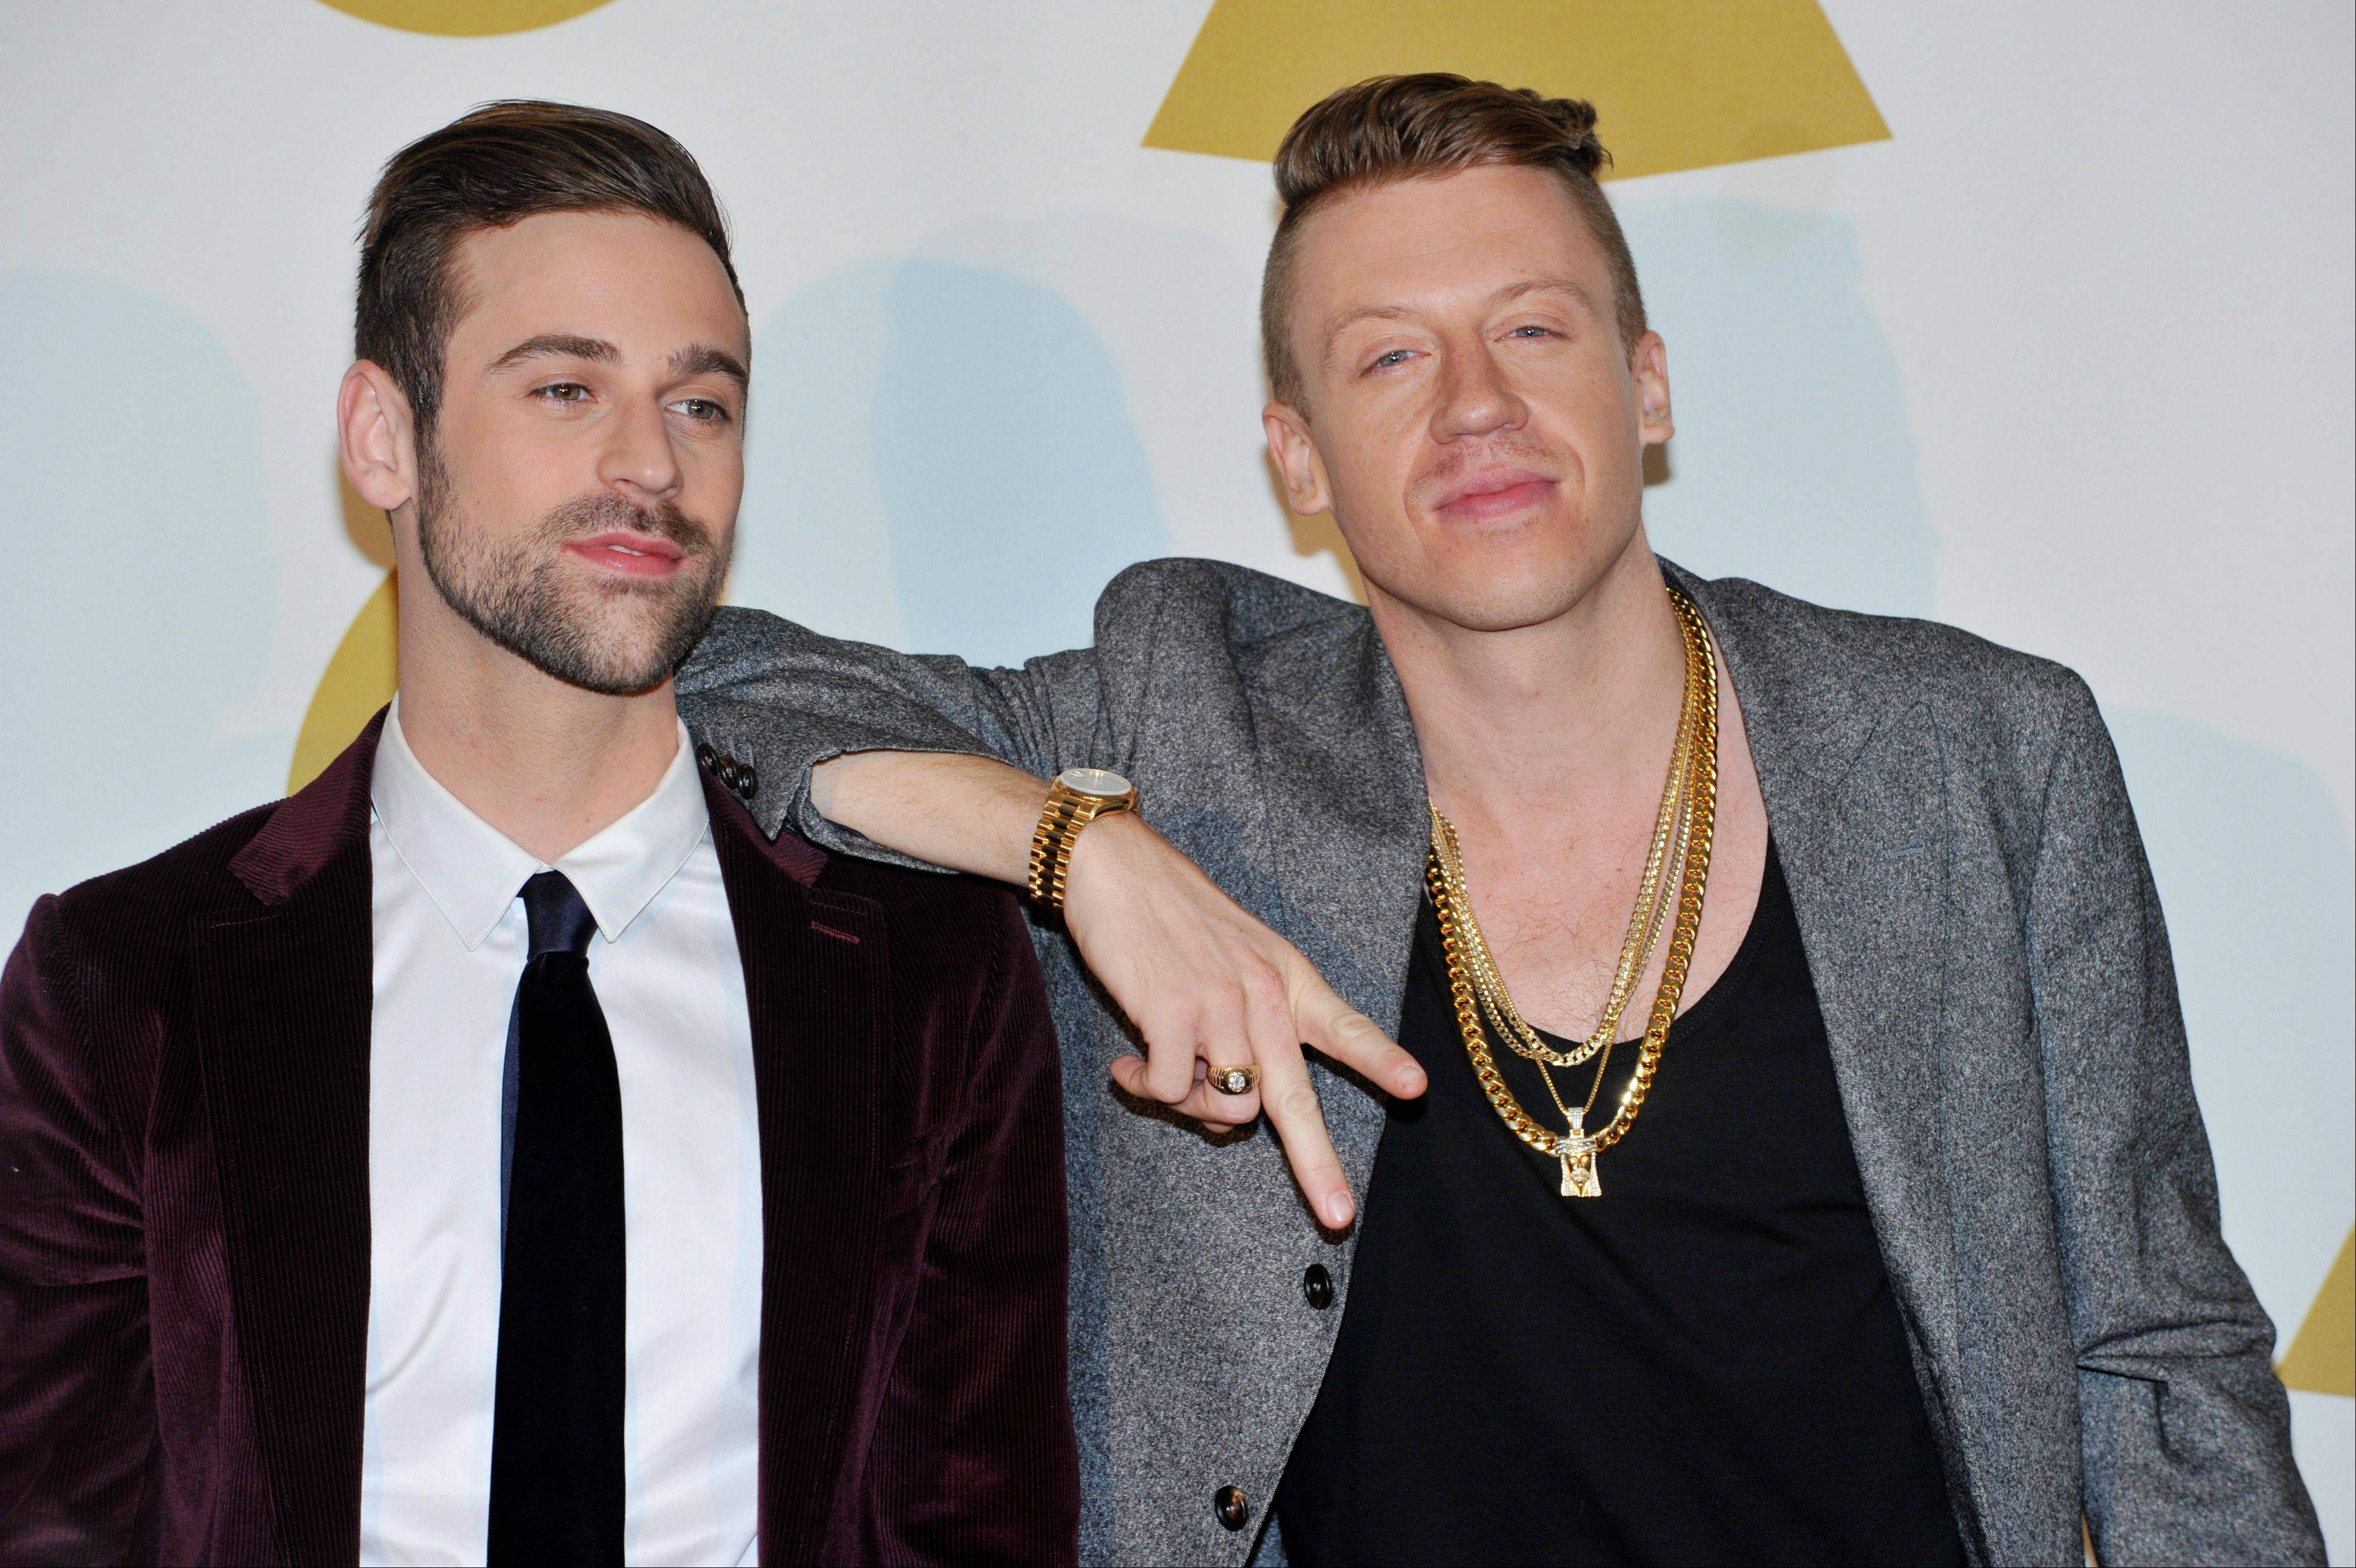 Ryan Lewis, left, and Macklemore pose backstage at the Grammy Nominations Concert Live! on Friday at the Nokia Theatre L.A. Live in Los Angeles.